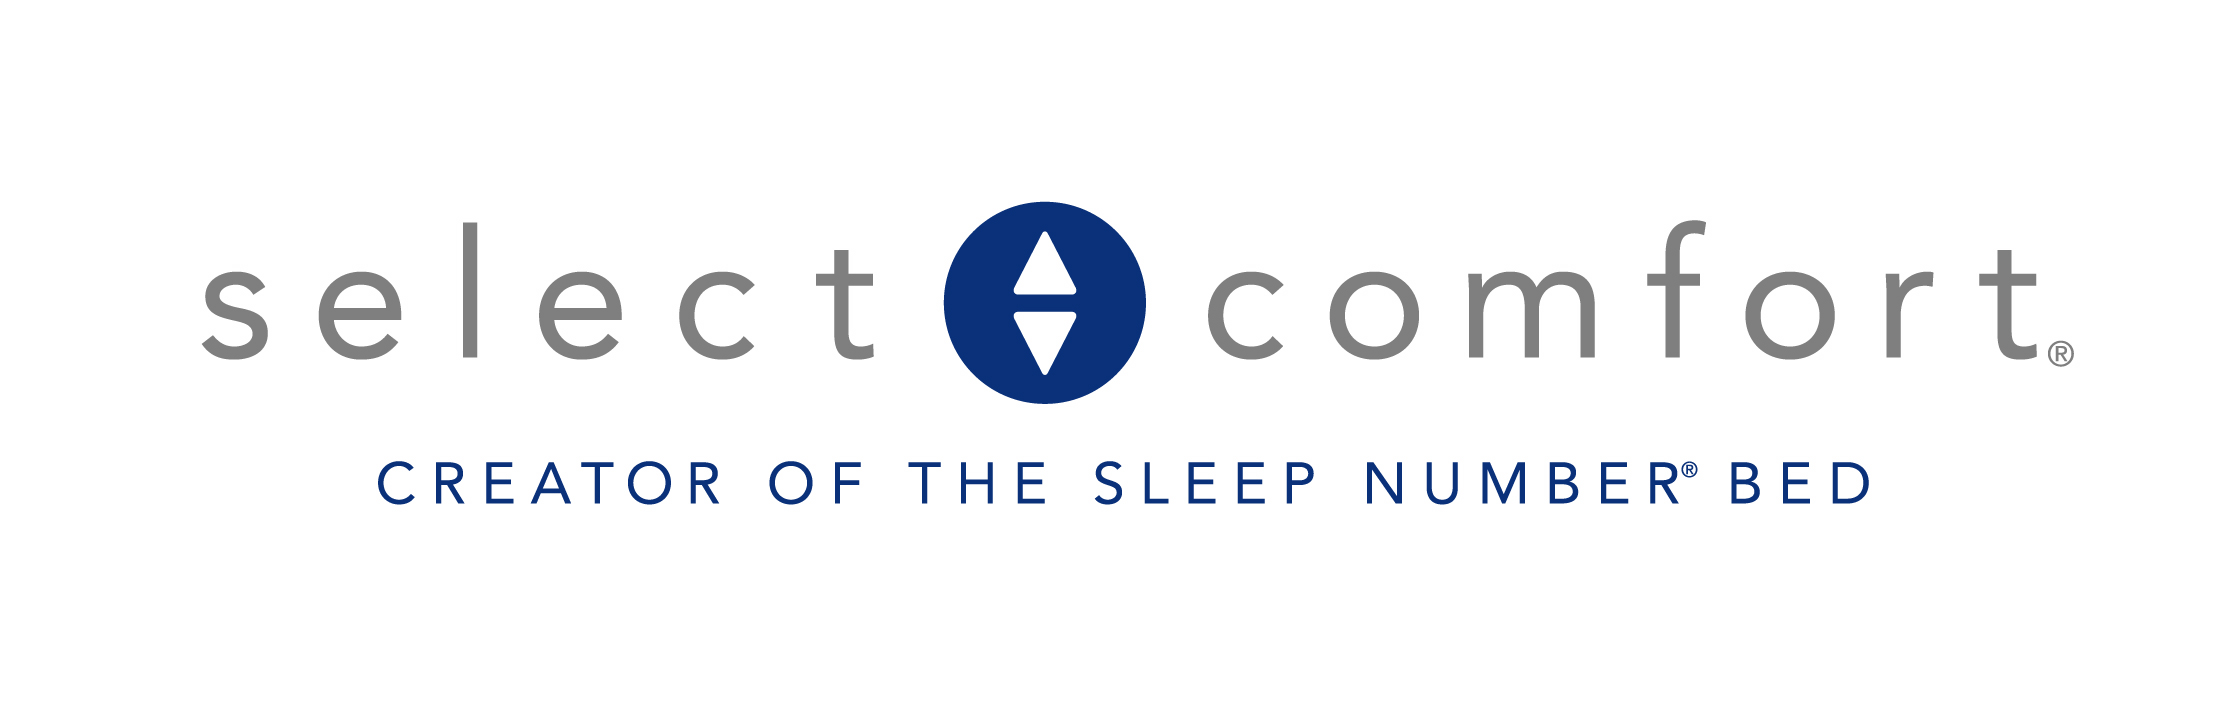 """Select Comfort sought a retail marketing strategy coherent with their social content. """"Sleep Schedule"""" and """"Night Cap""""expanded on their tech savvy video series,""""Sleep Geek Pete."""" Then through poetic storytelling with """"Tomorrow, the world"""", I extolled the inventiveness of their newly released Sleep IQ Kids bed technology."""